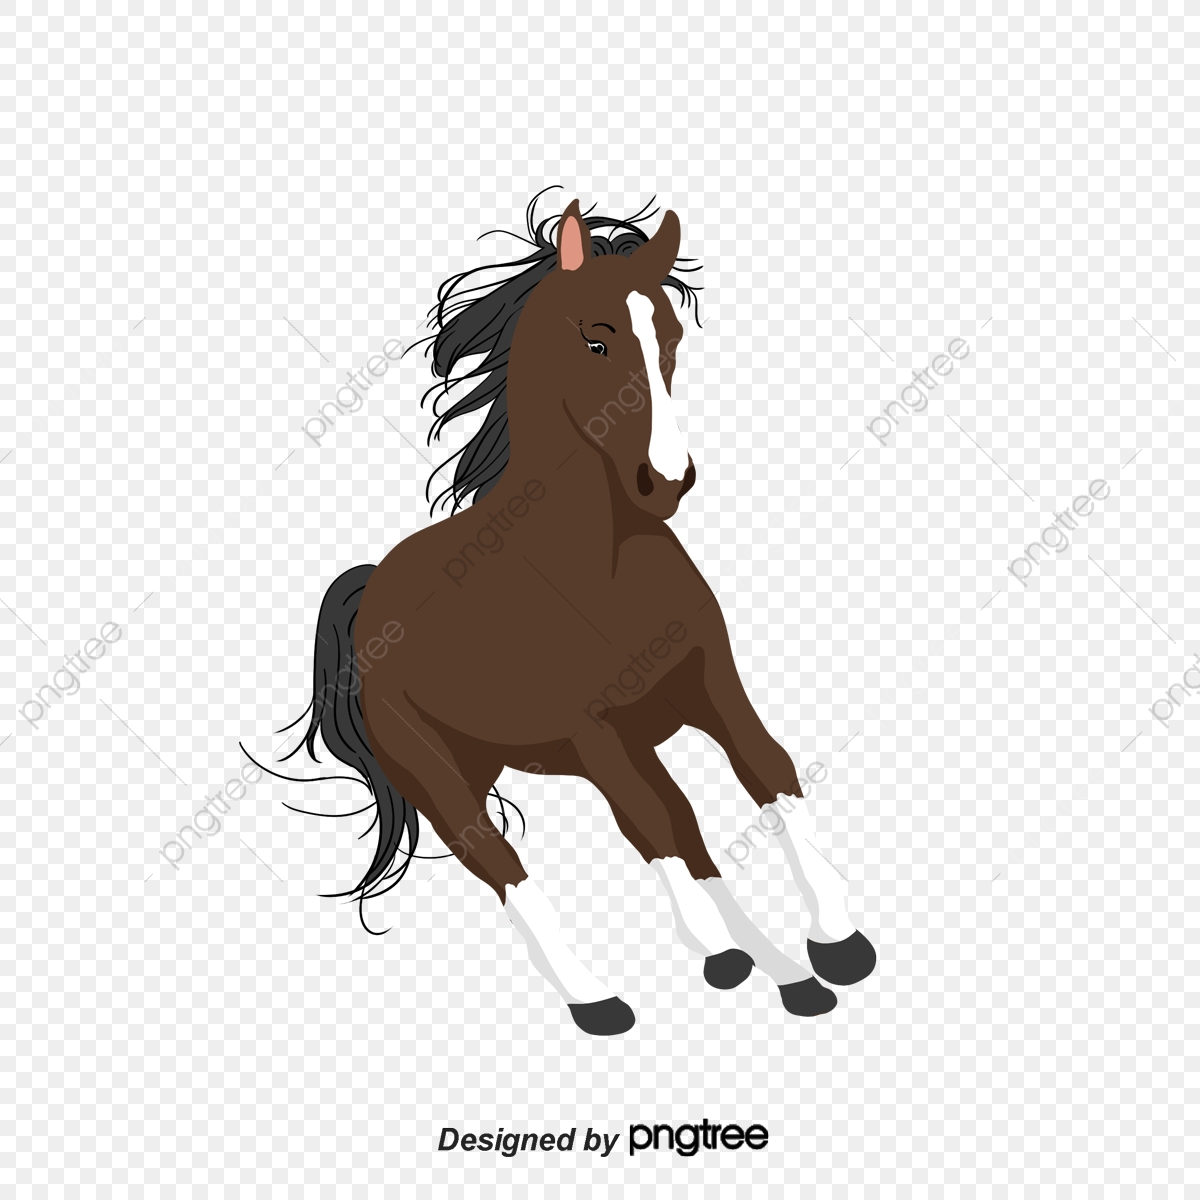 A Running Horse Horse Clipart Clip Art Comic Png Transparent Clipart Image And Psd File For Free Download